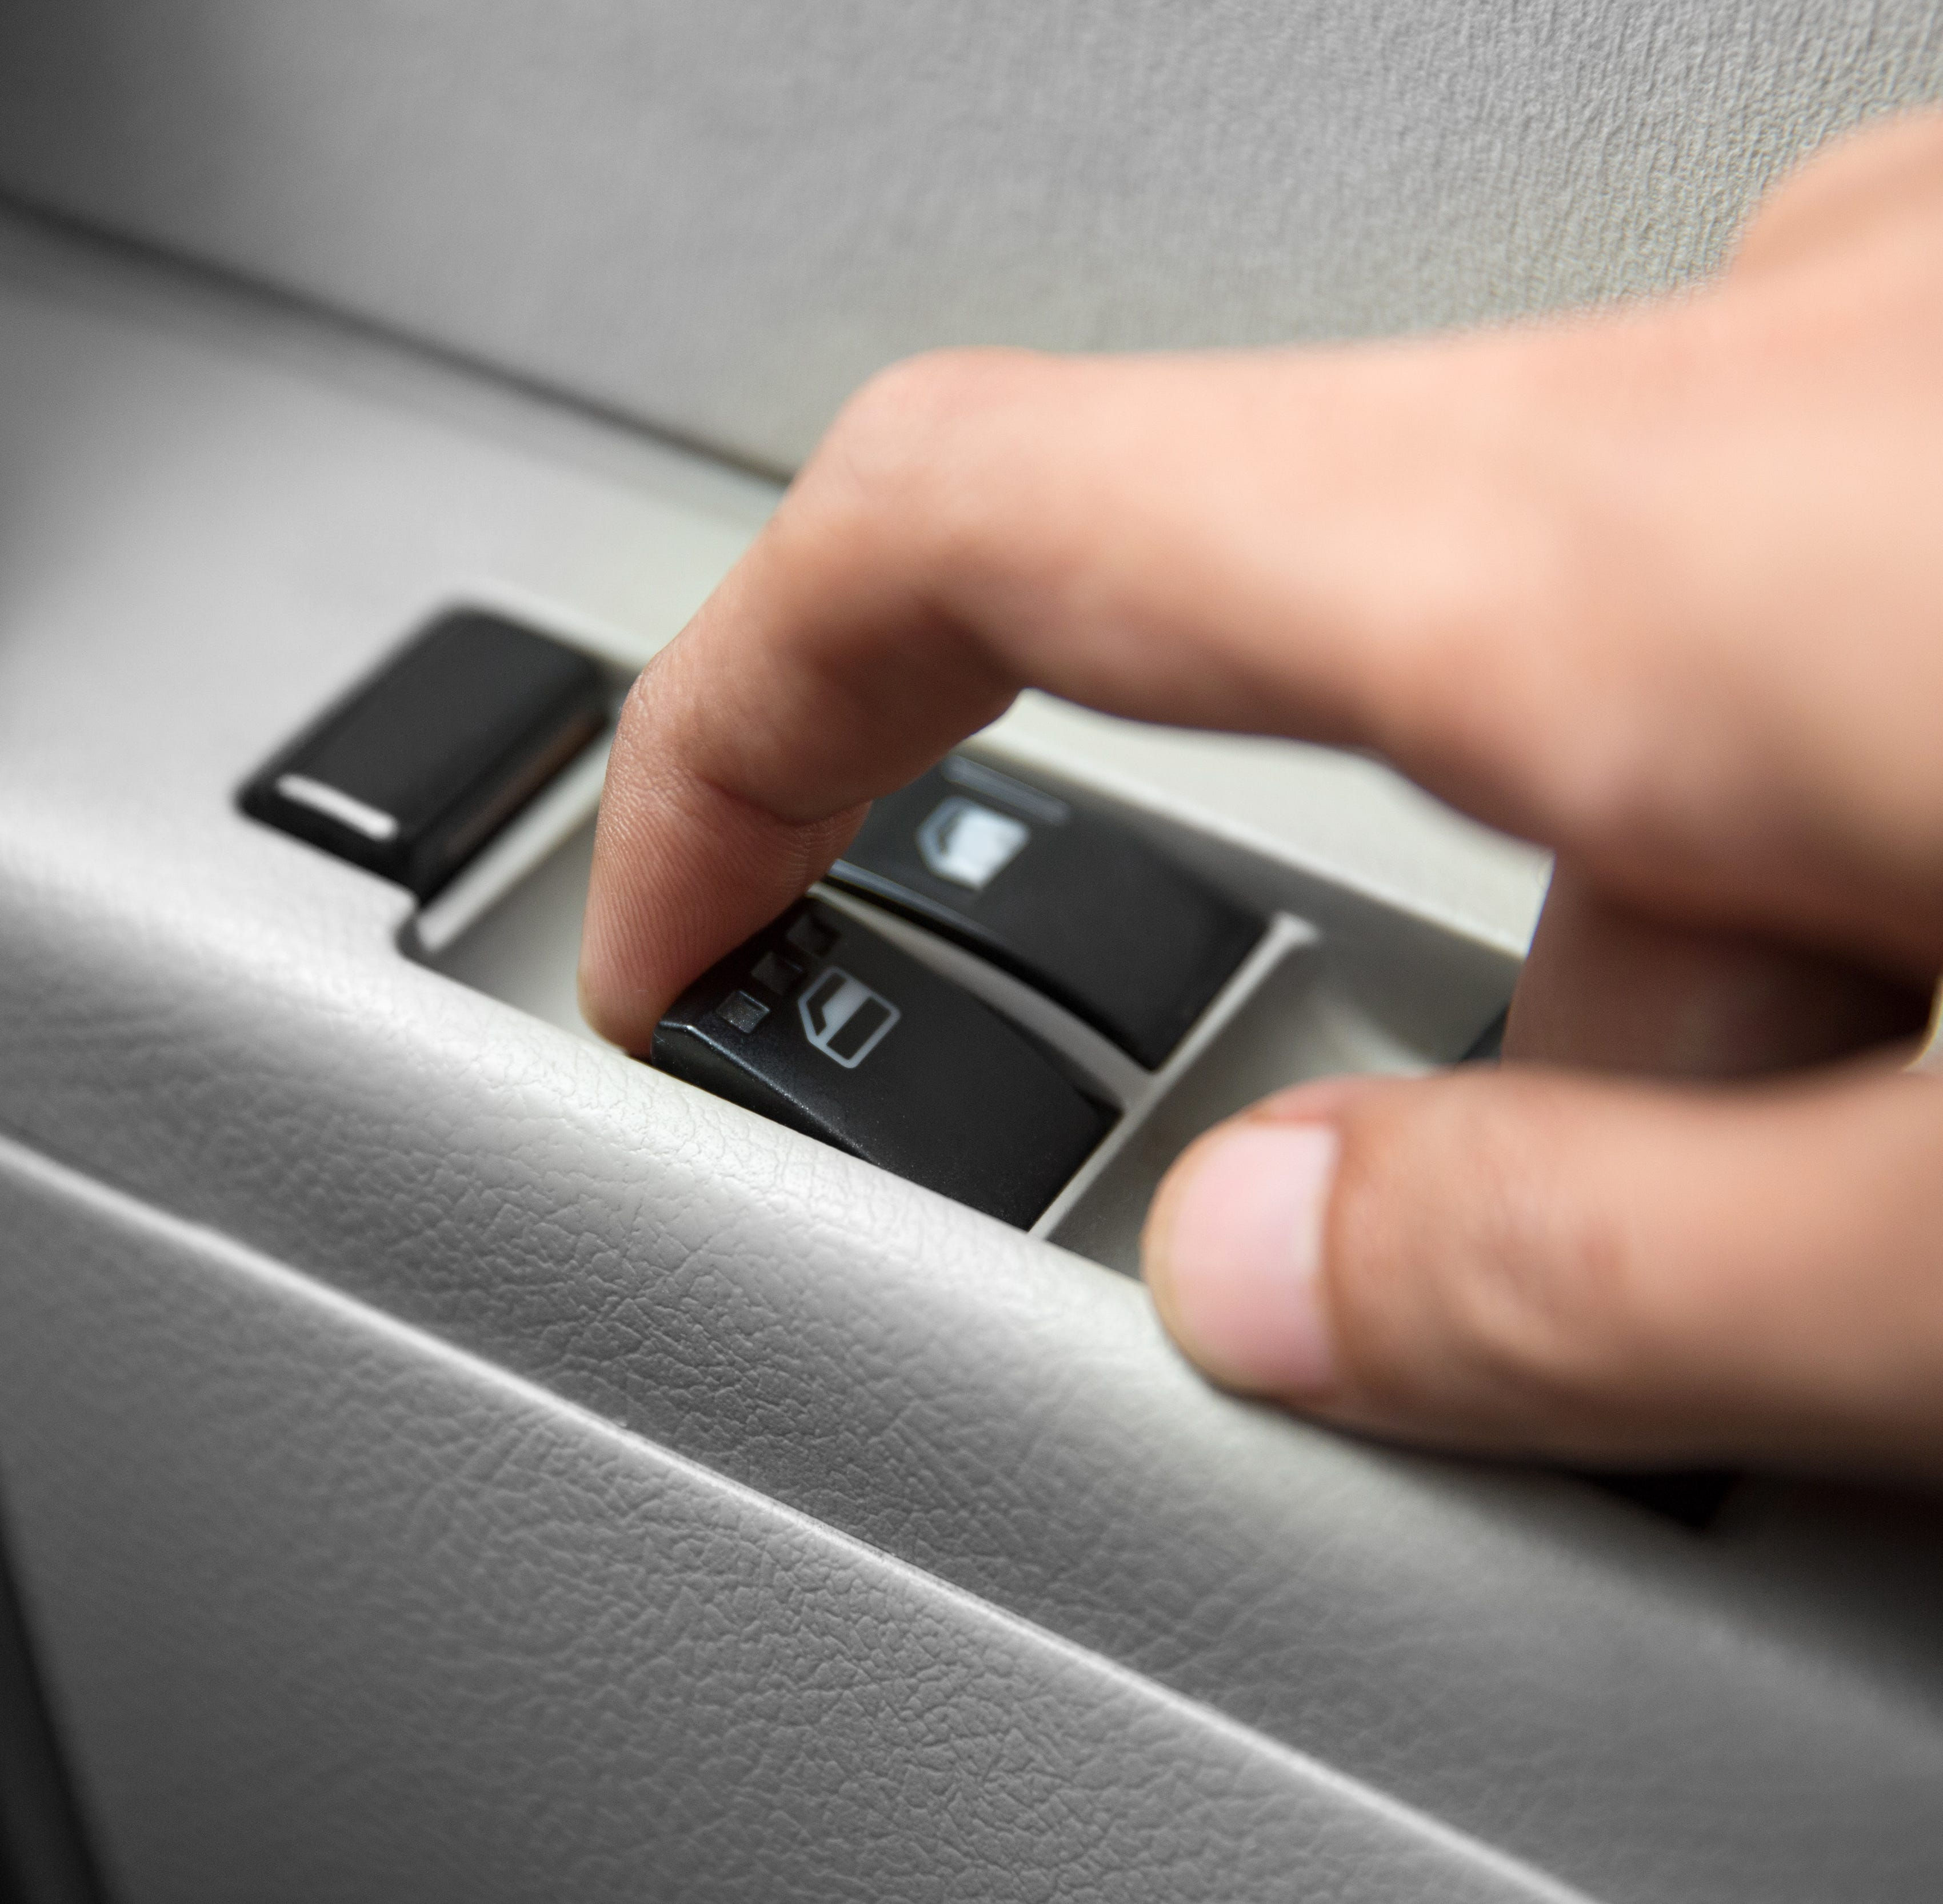 According to a Netquote study, the most germs on rideshare vehicles are on the window buttons and seat belts.